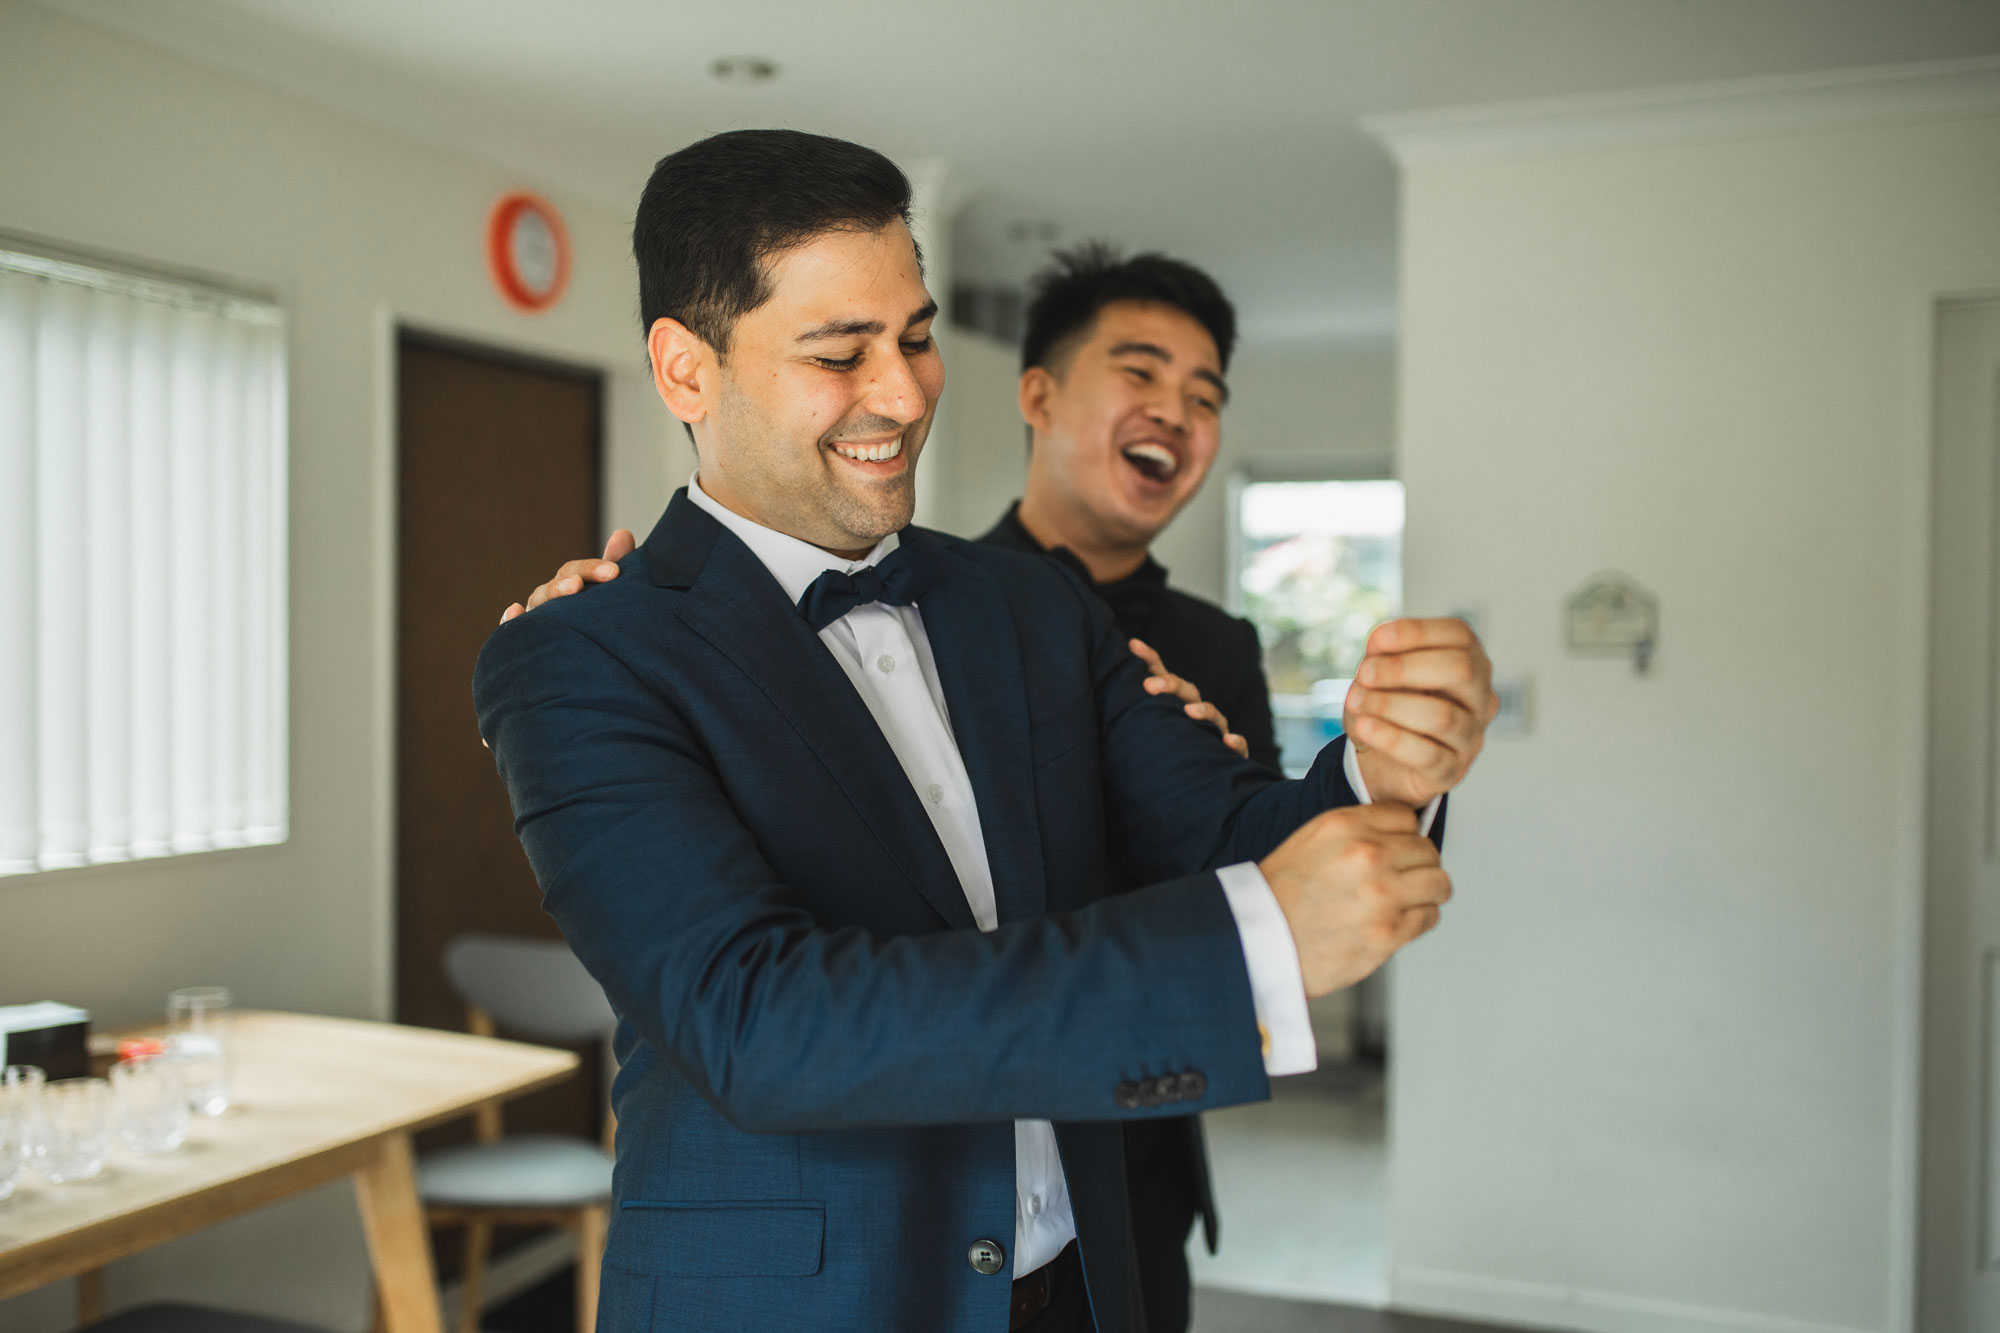 auckland wedding groom and best man